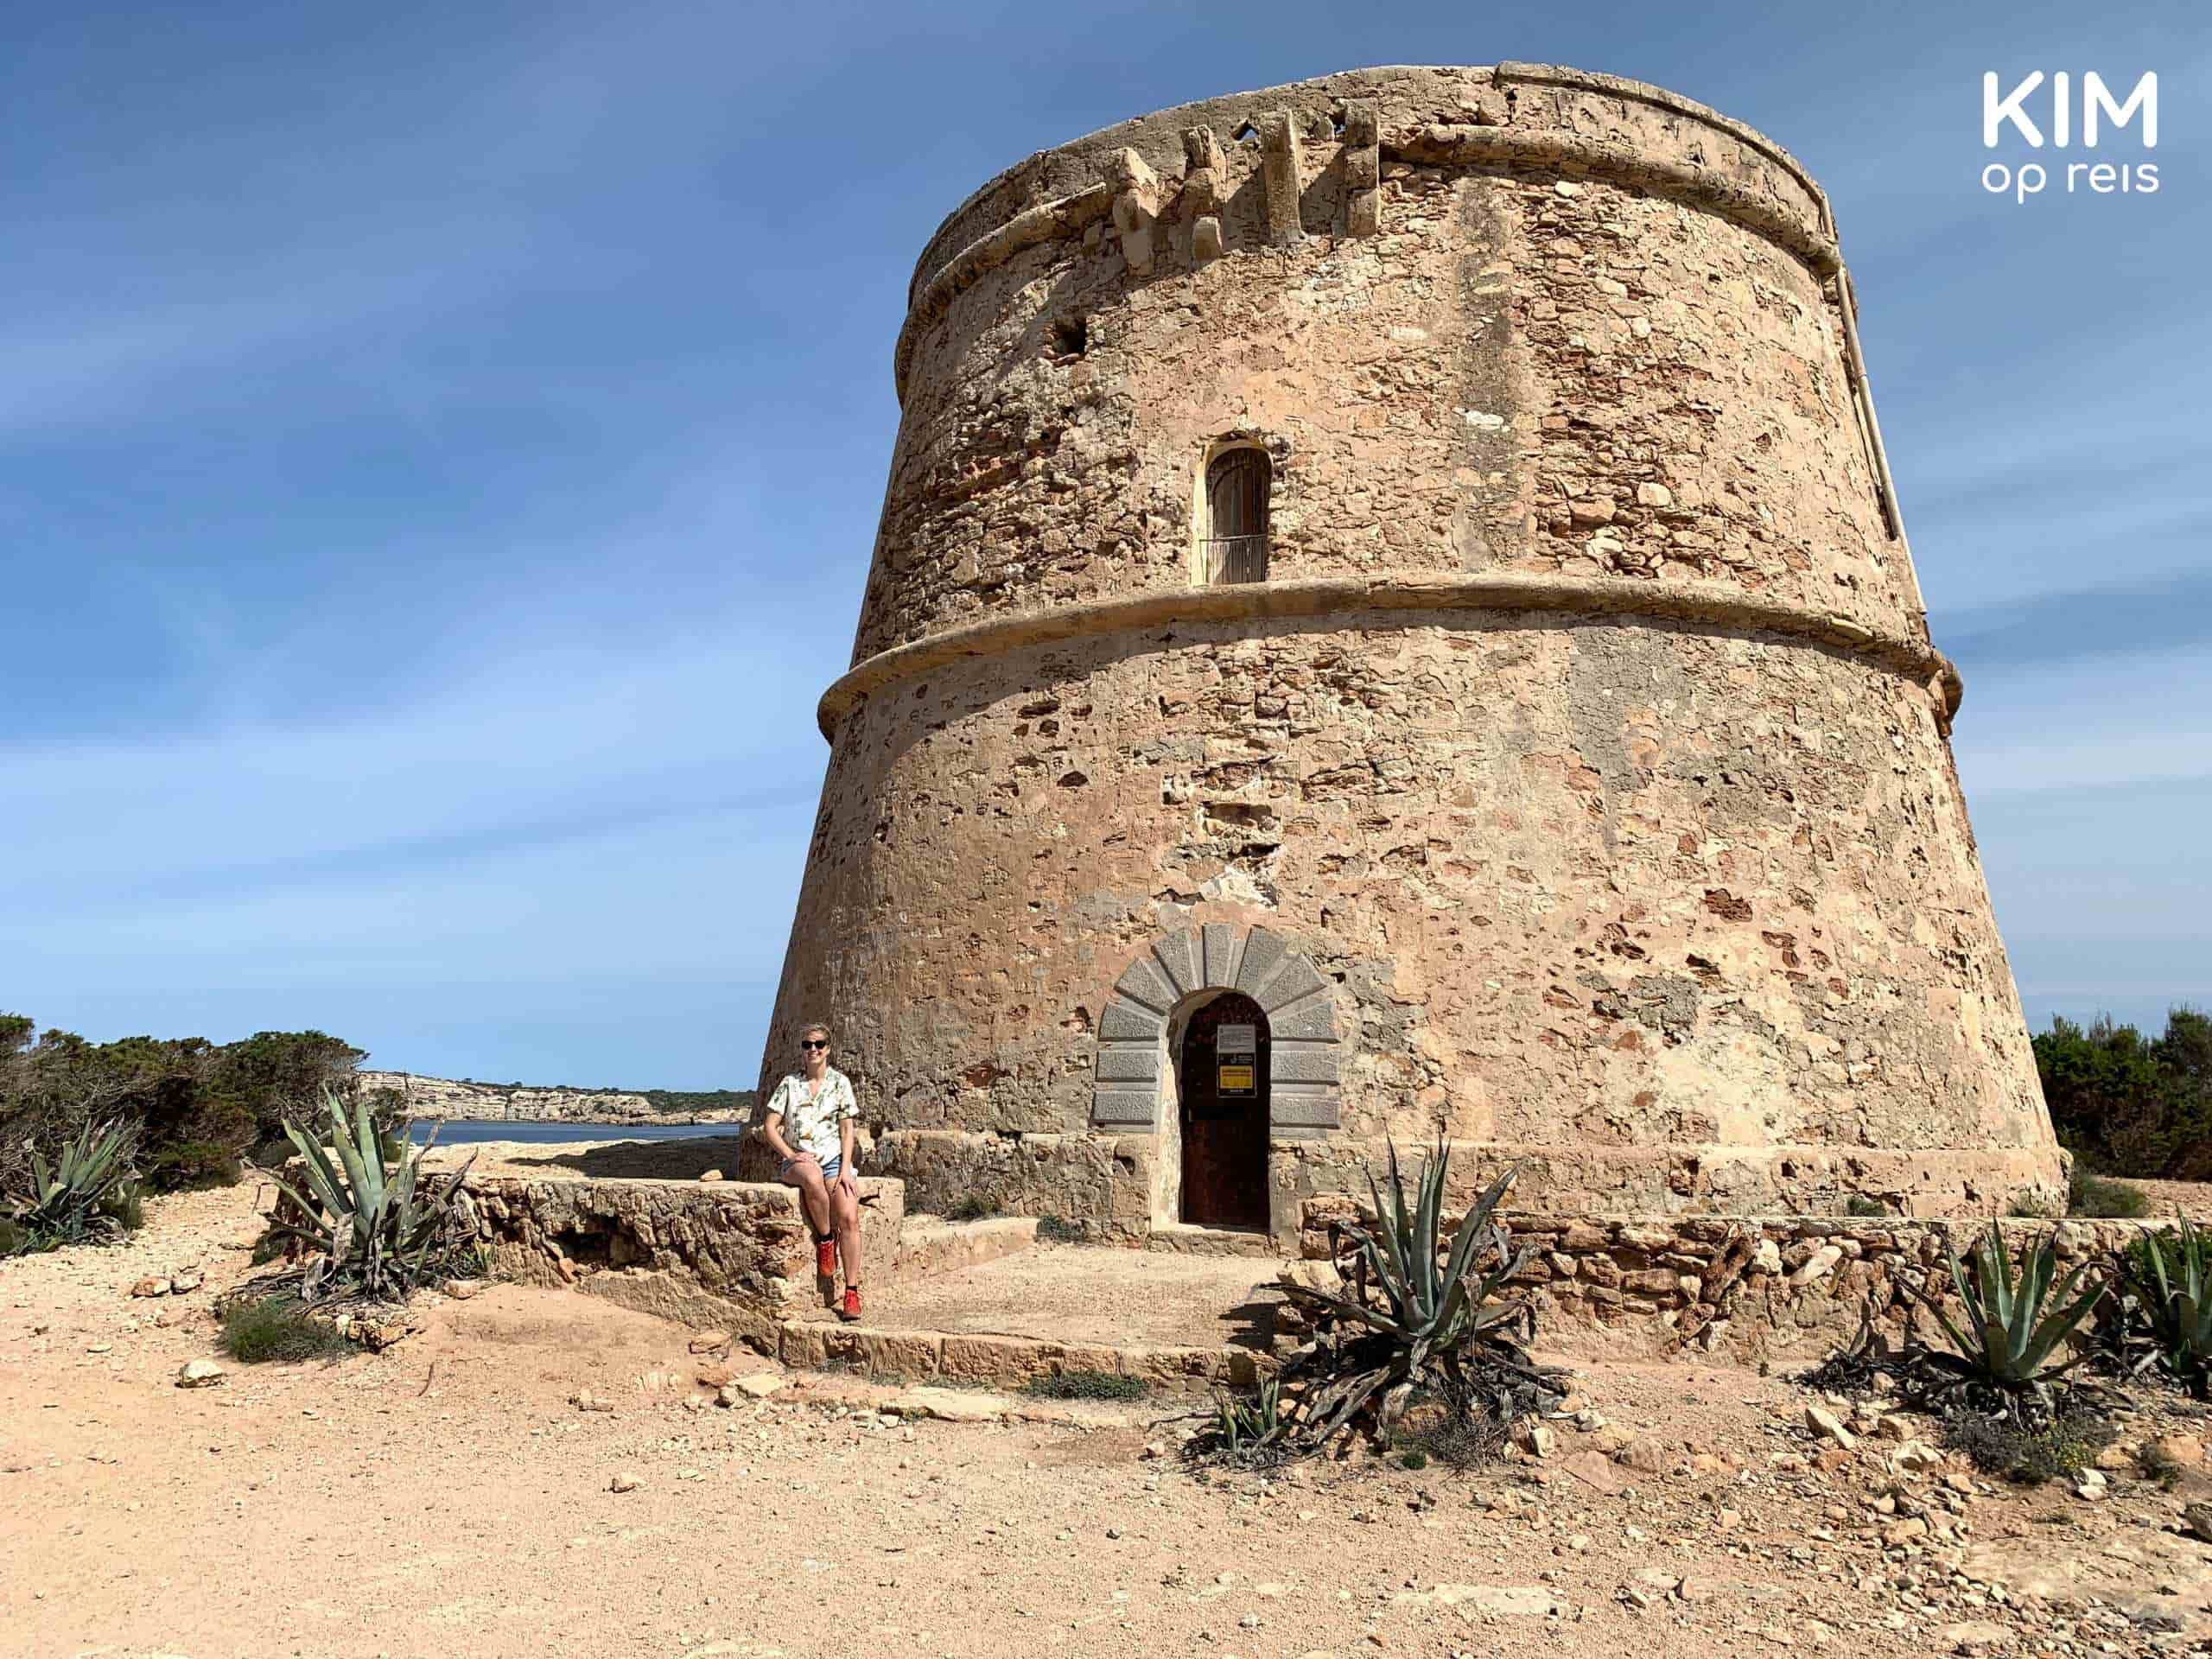 Torre d'en Rovira: Kim is sitting on a wall in front of the tower